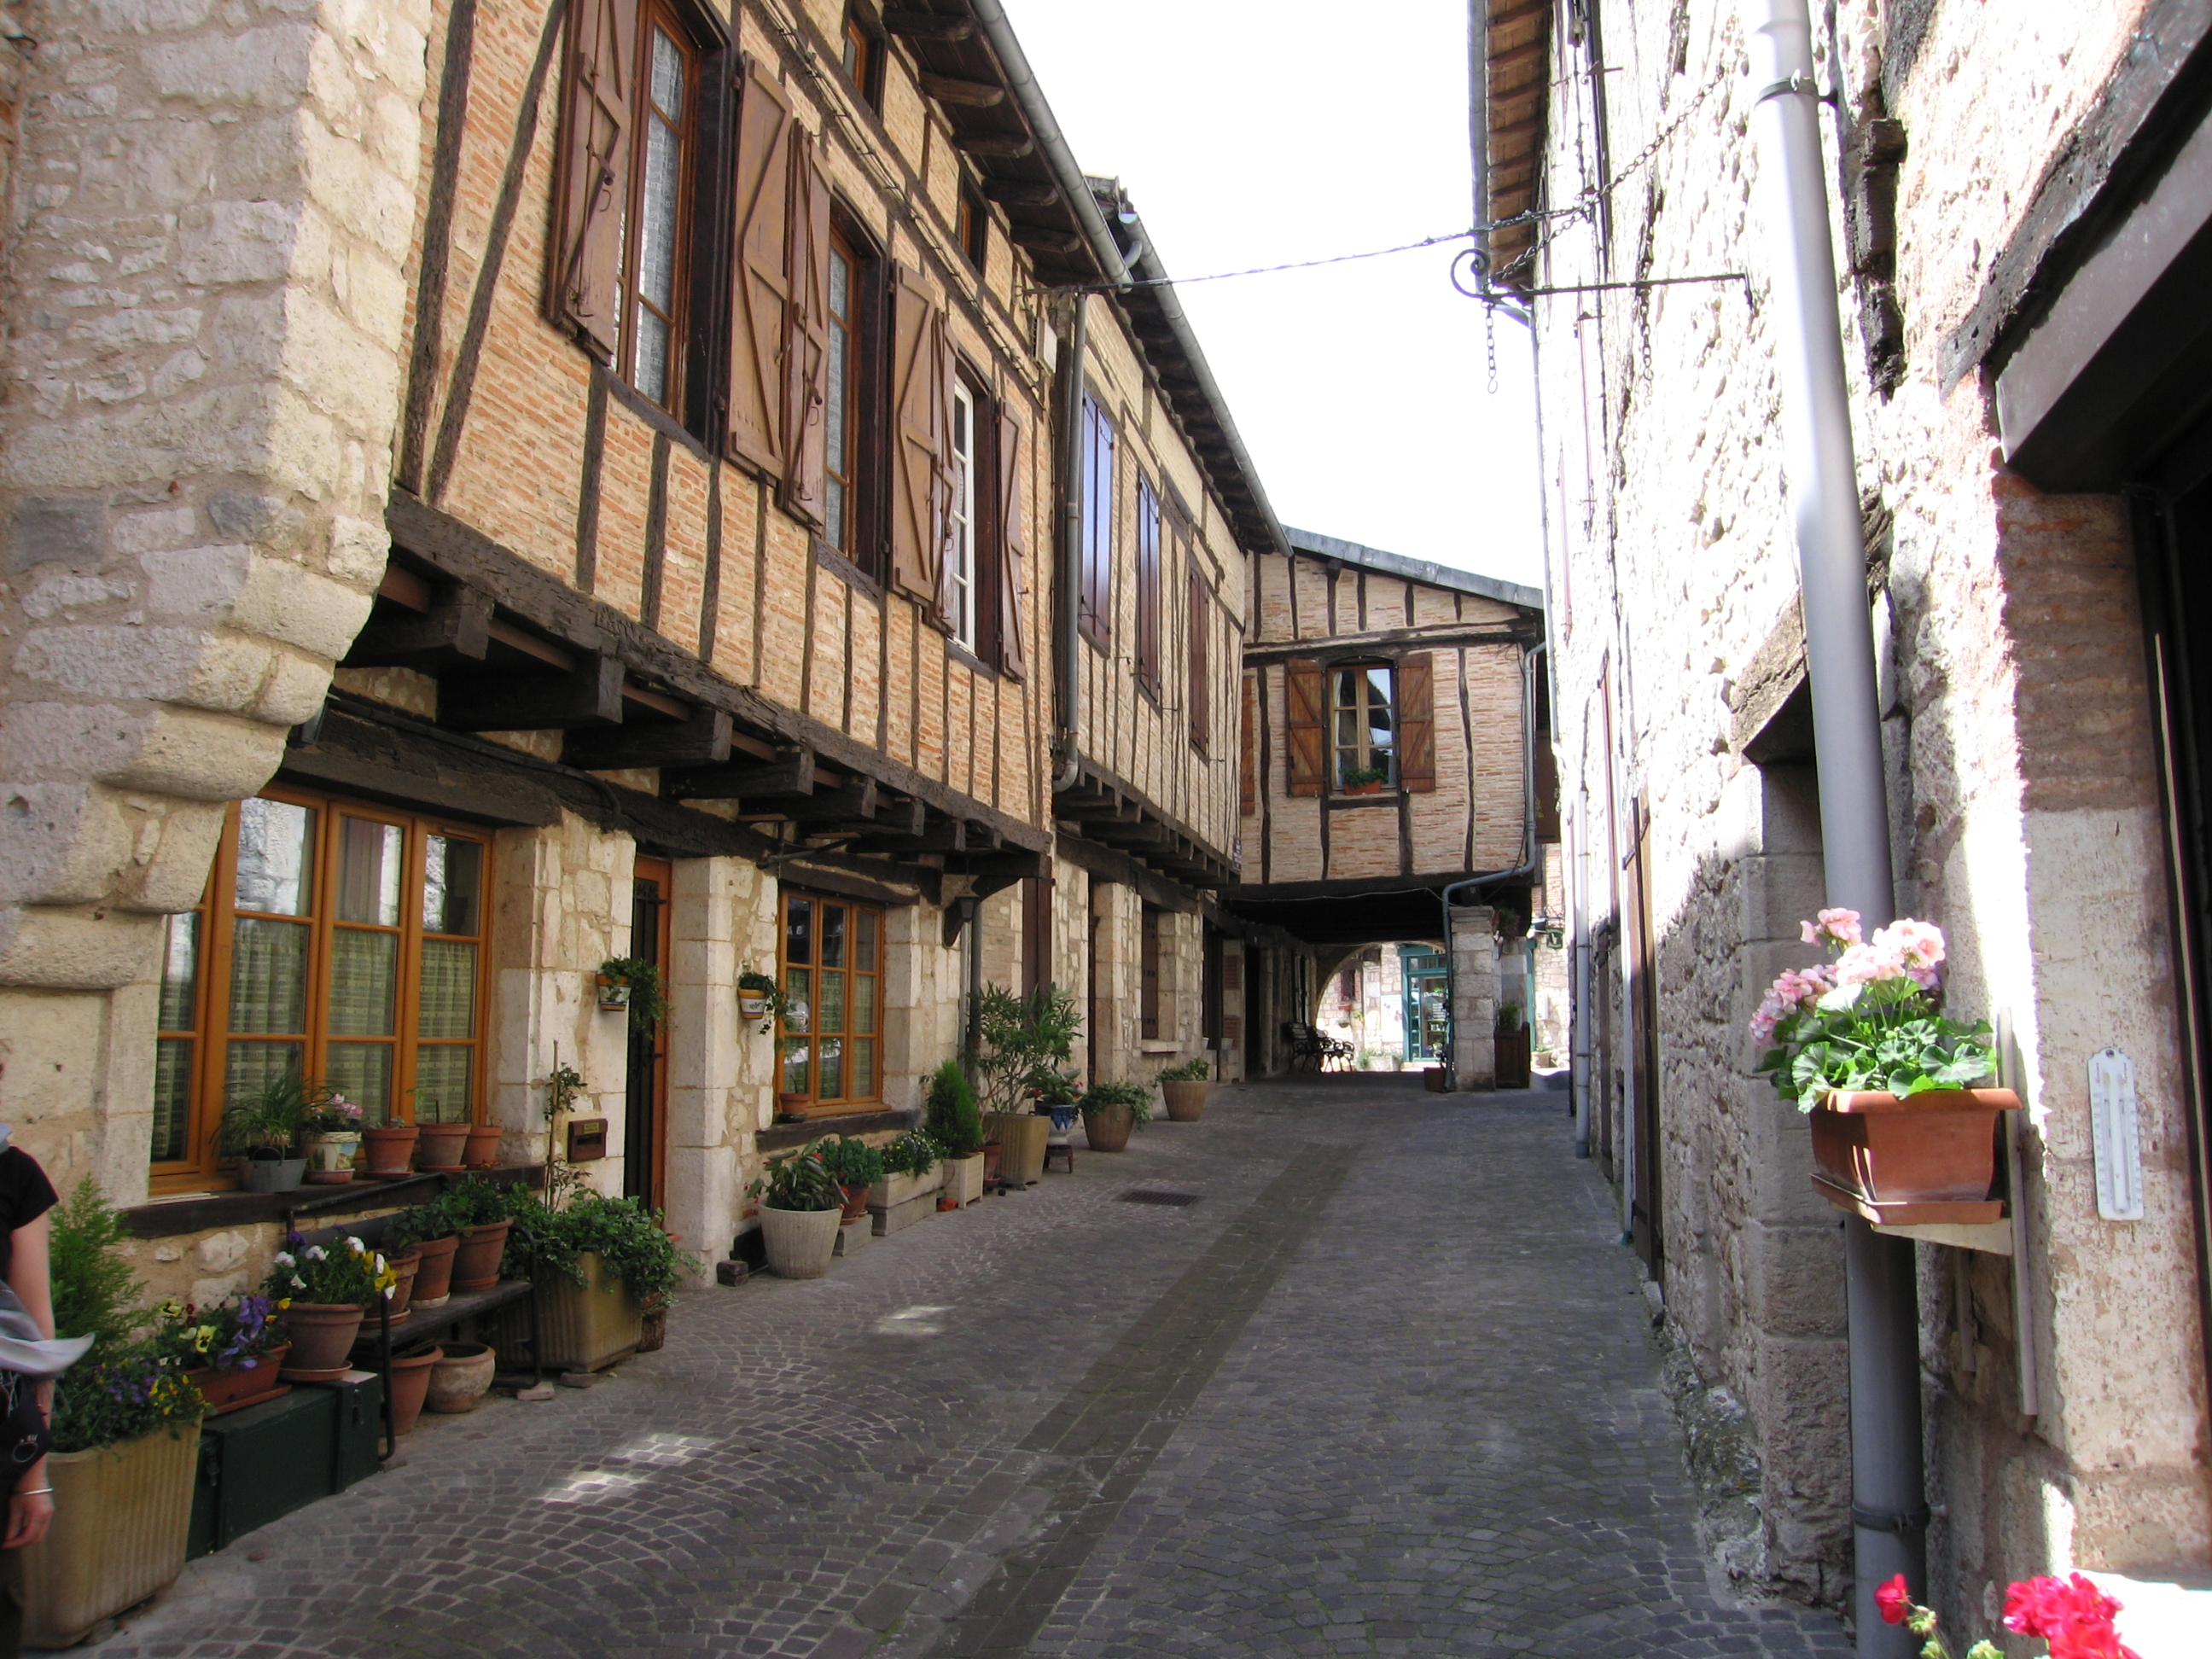 Castelnau de montmiral is a commune in the tarn department in southern